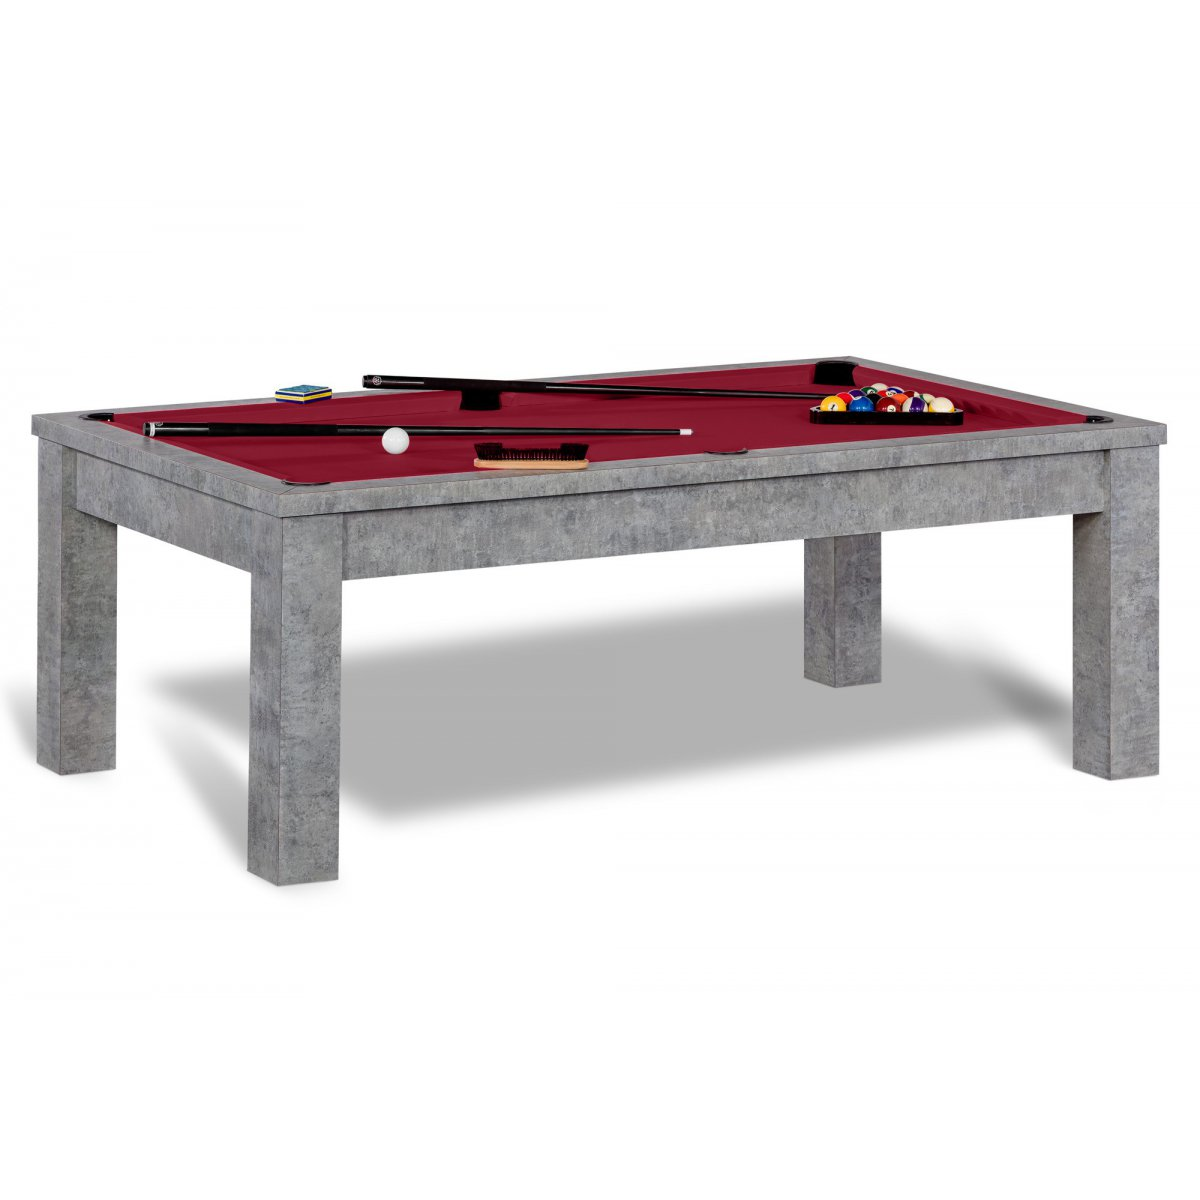 Table billard convertible panama billard anglais americain - Table de billard transformable ...